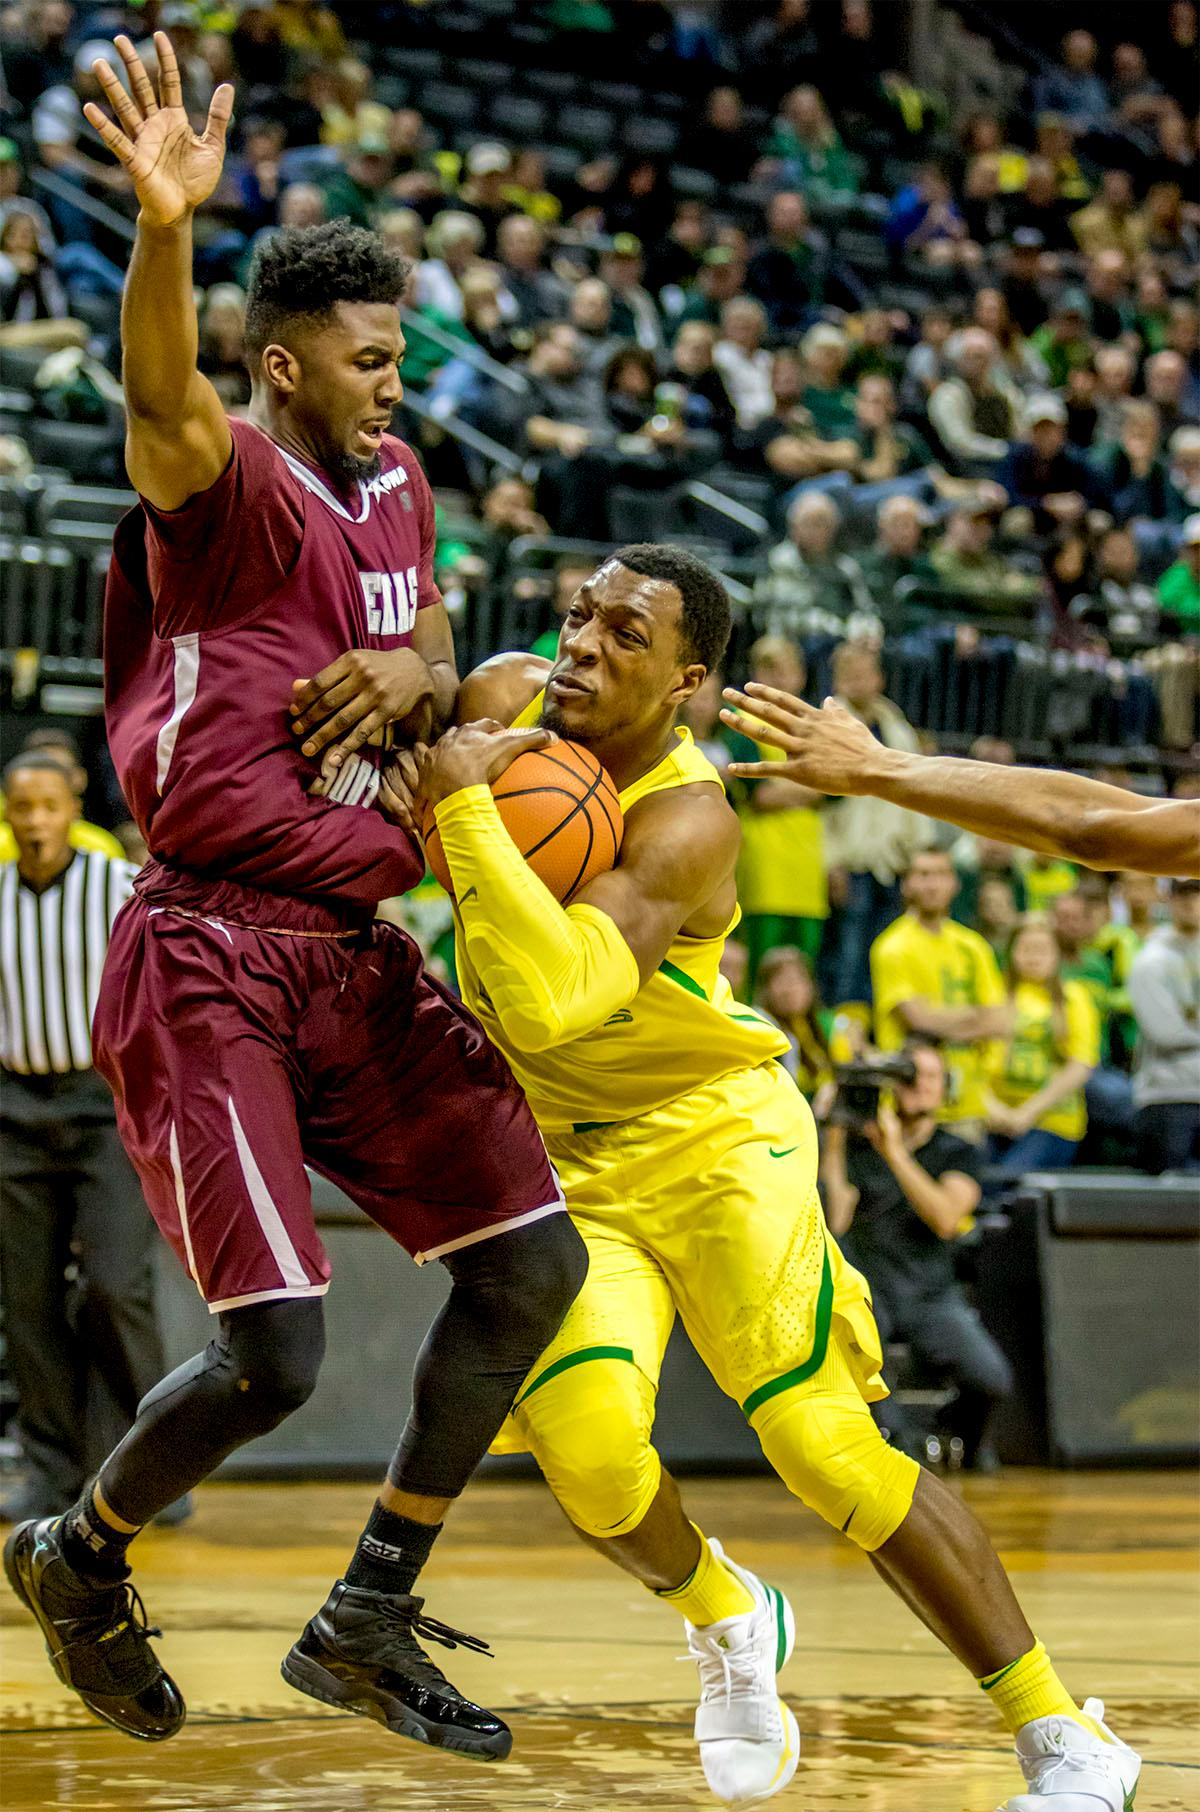 The Duck's MiKyle McIntosh (#22) pushes his way towards the basket. The Oregon Ducks defeated Texas Southern Tigers 74-68. The Ducks are now 7-3 overall in the Pac-12. Photo by August Frank. Oregon News Lab